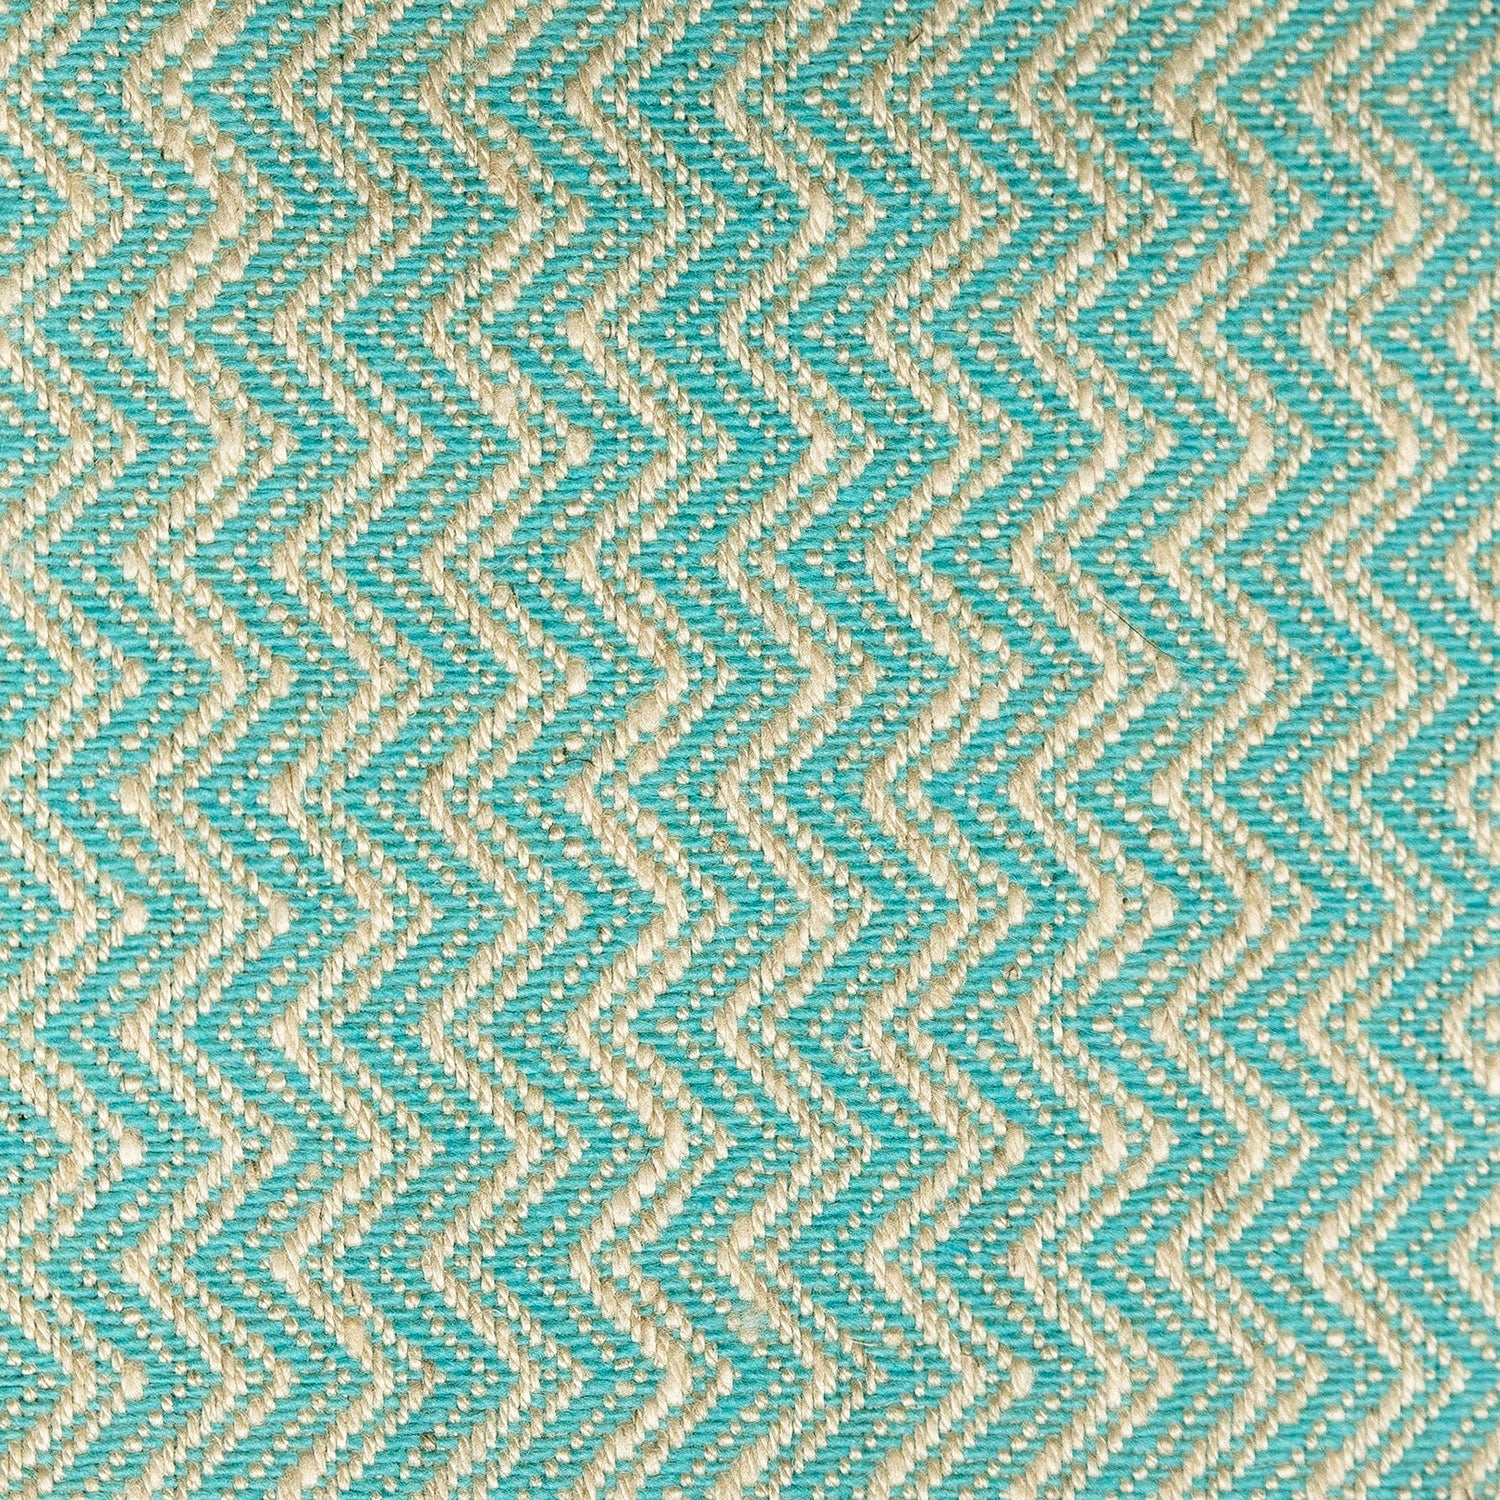 Turquoise and neutral chevron weave fabric for contract and domestic curtains and upholstery